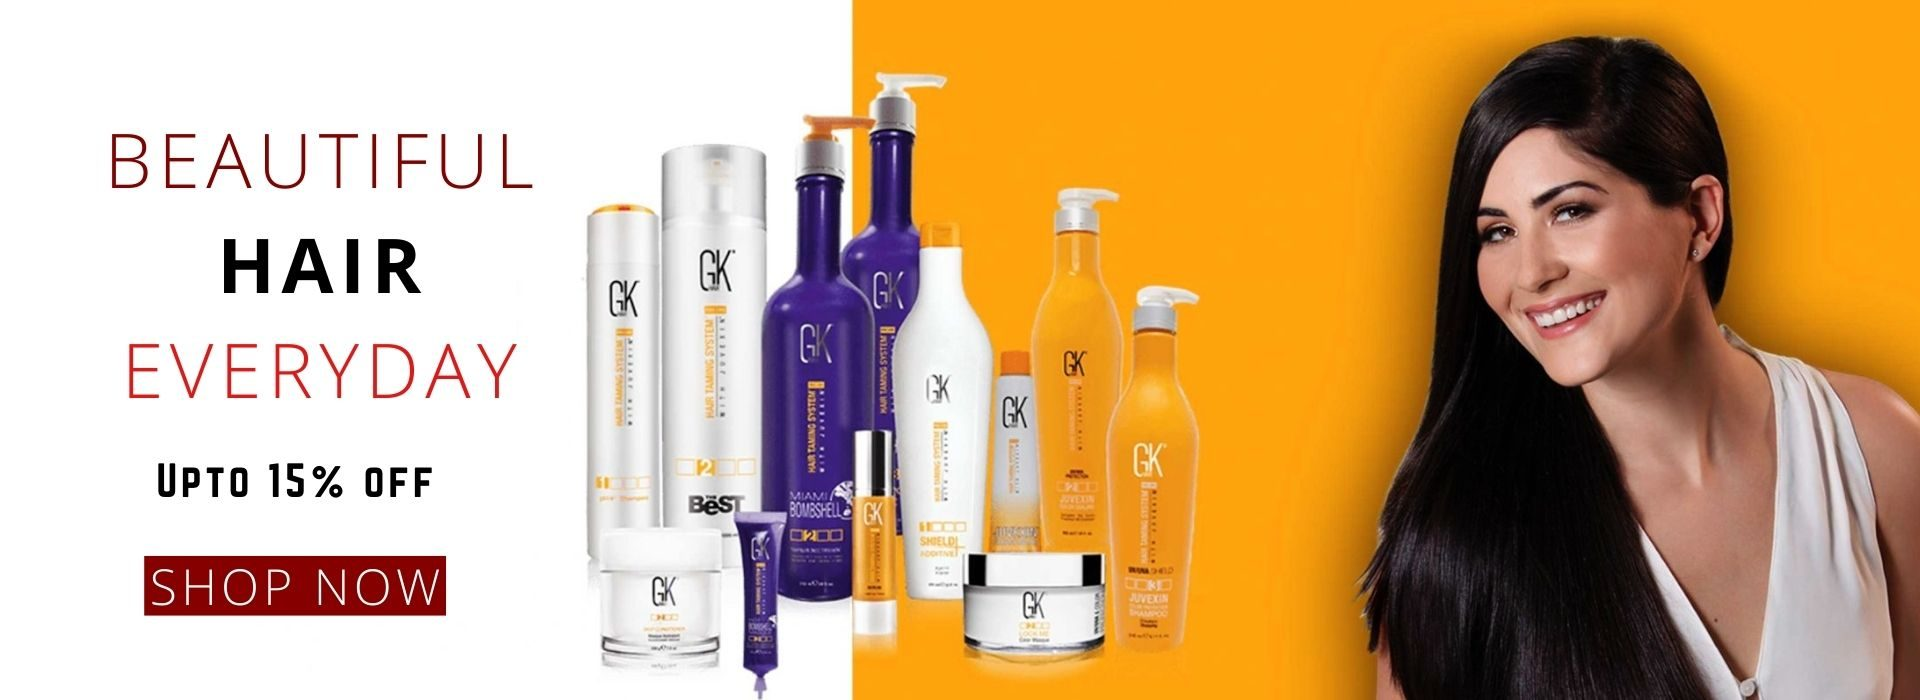 GK HAIR PRODUCTS OFFERS